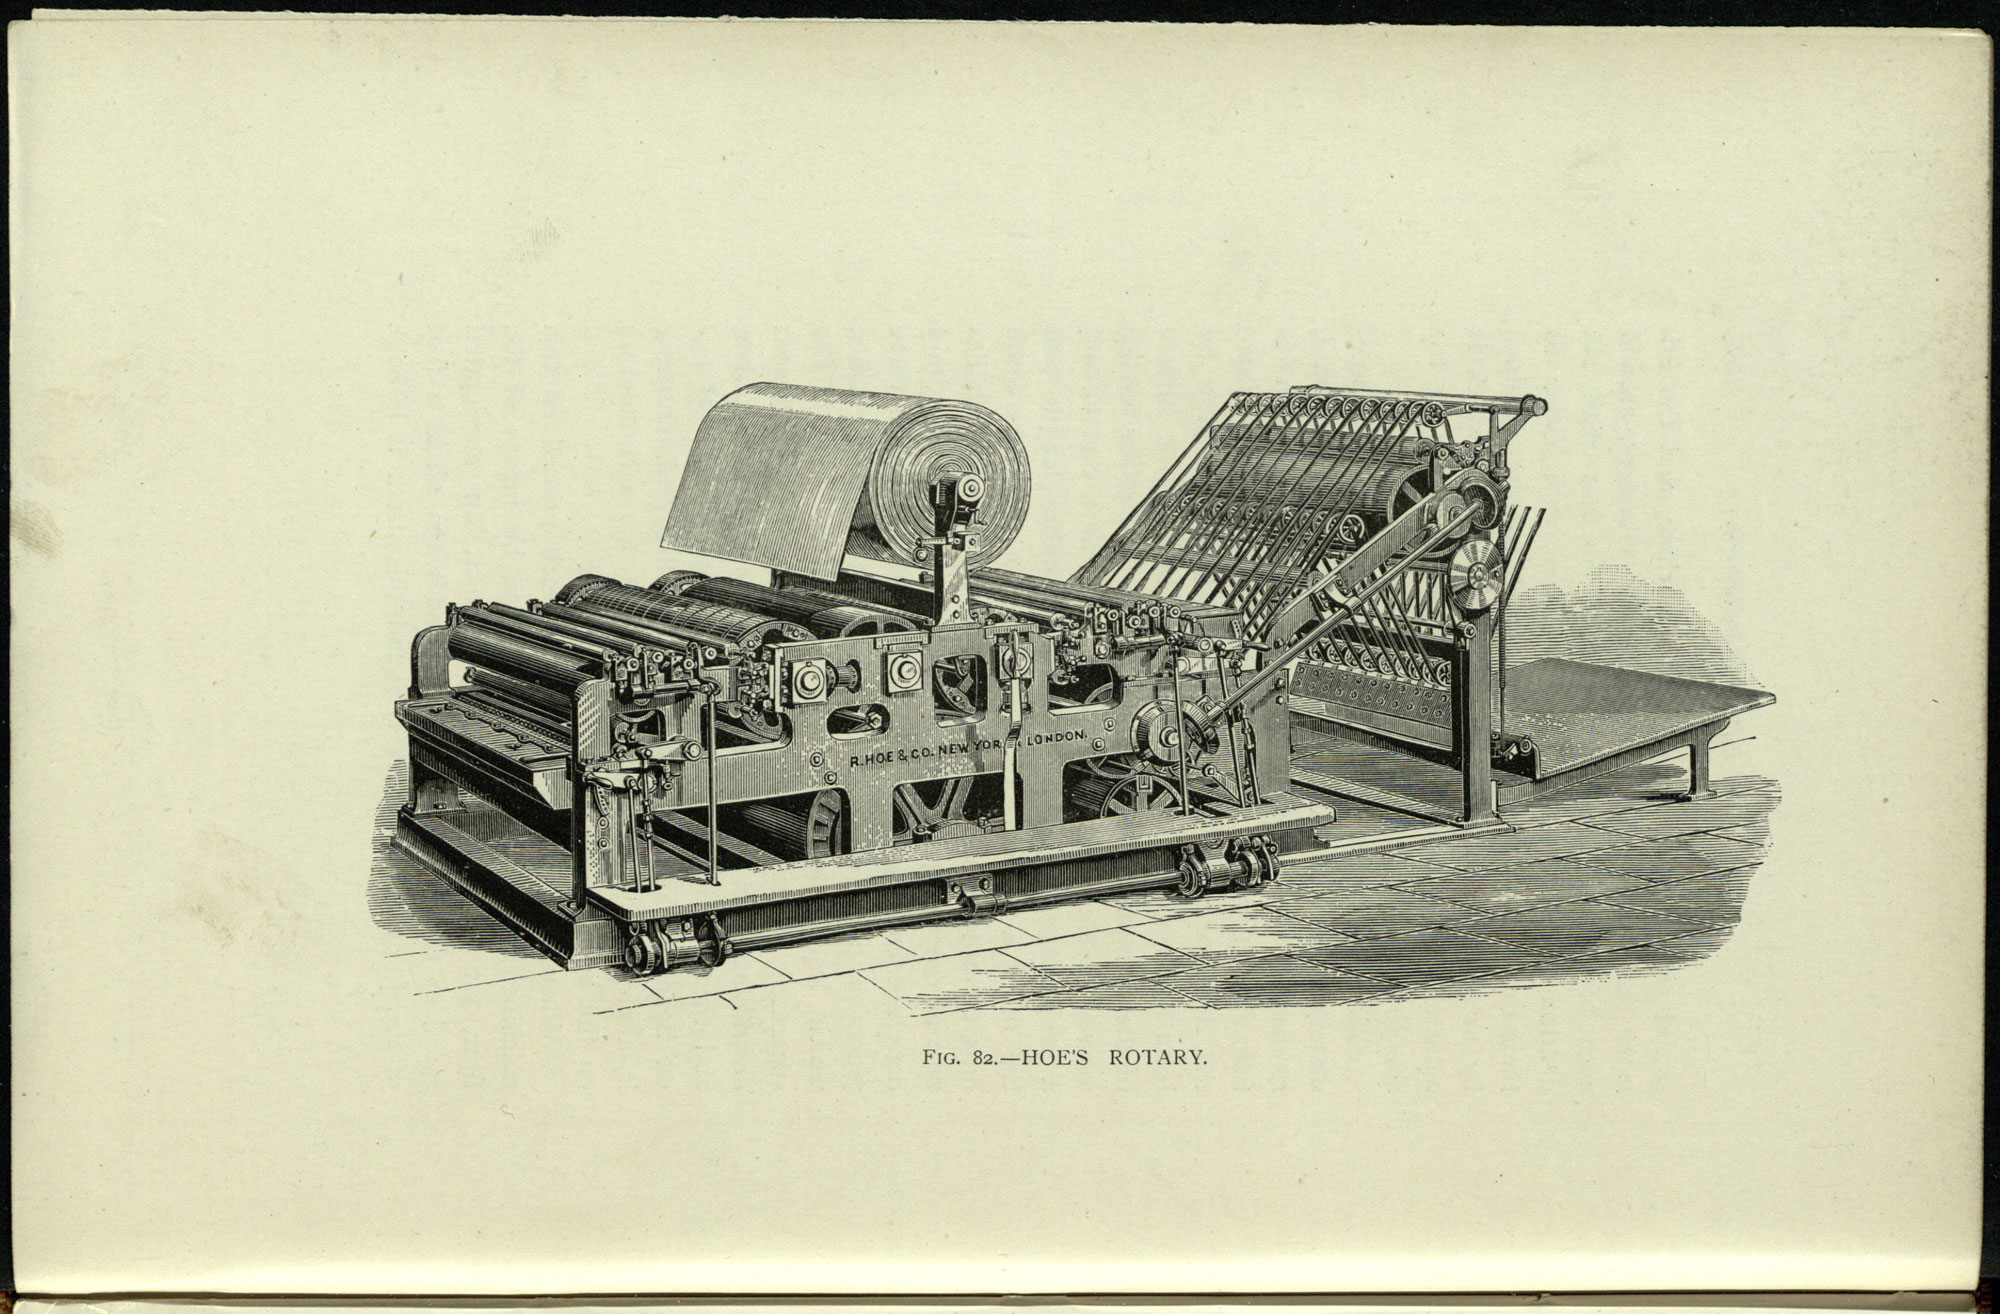 Image of Hoe Rotary Machine from a treatise on printing